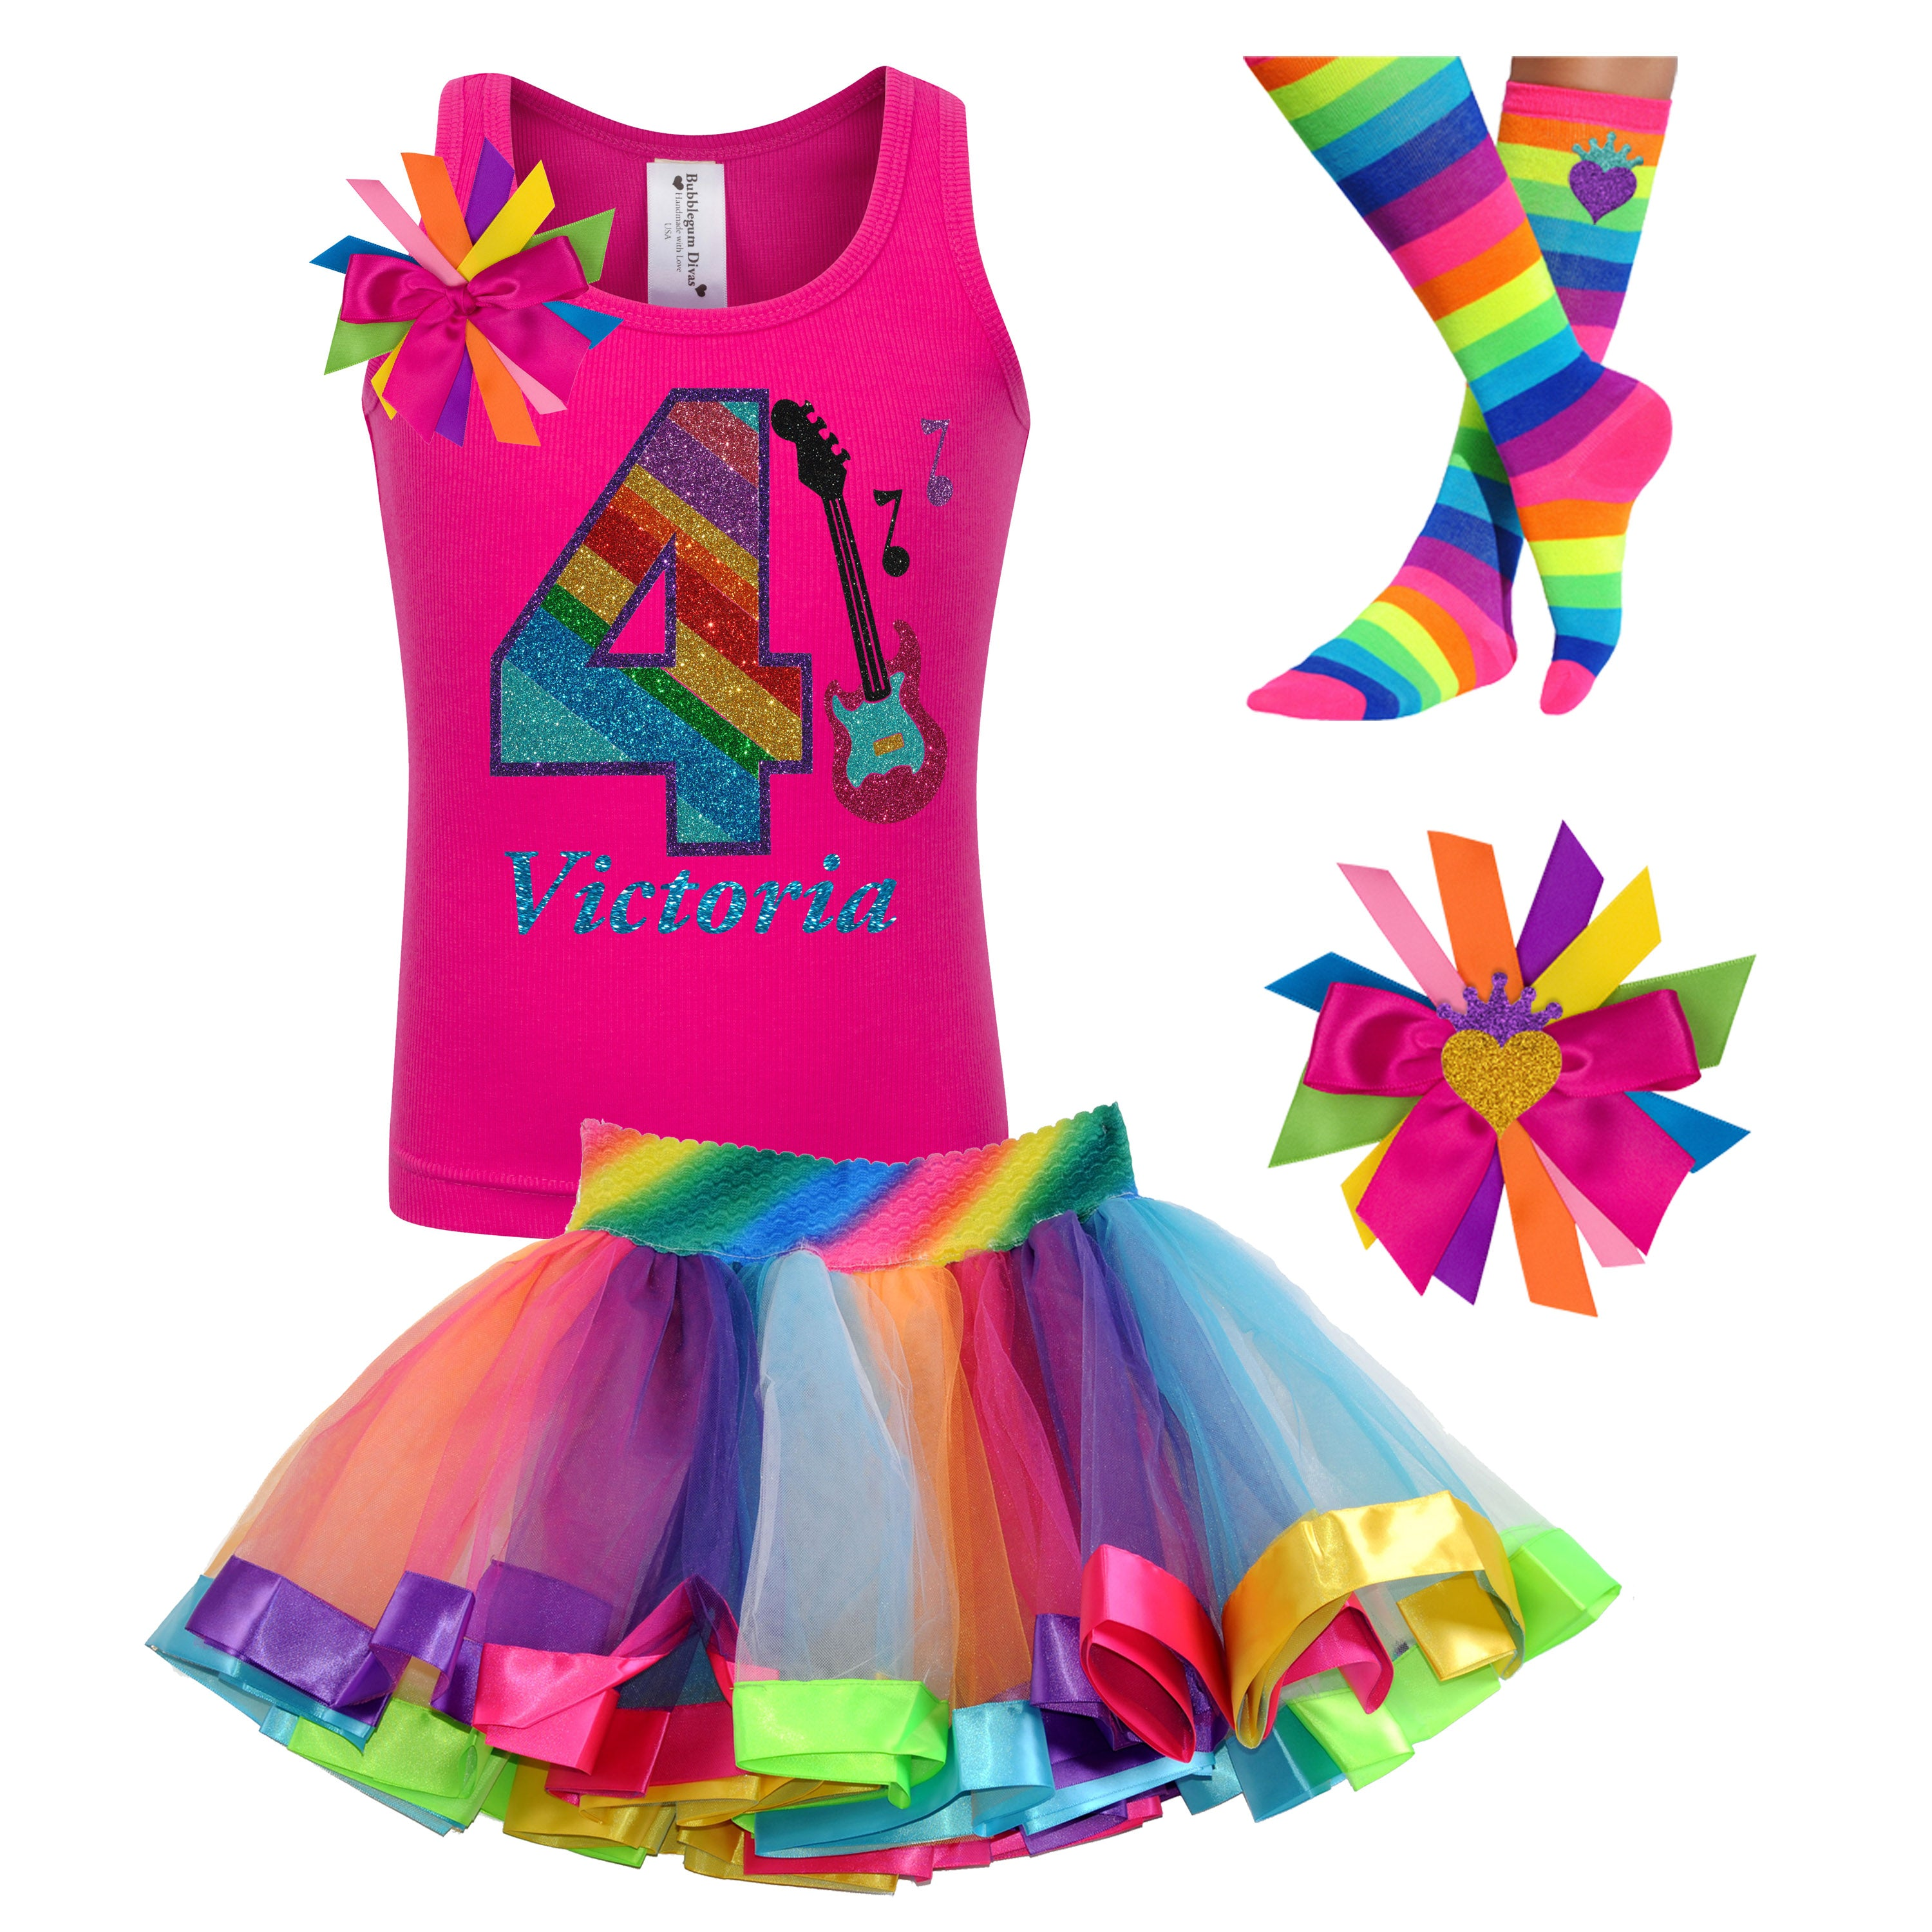 Girls Rock Star Guitar Shirt 4th Birthday Rainbow Tutu Rock N Roll Party Outfit 4PC Set